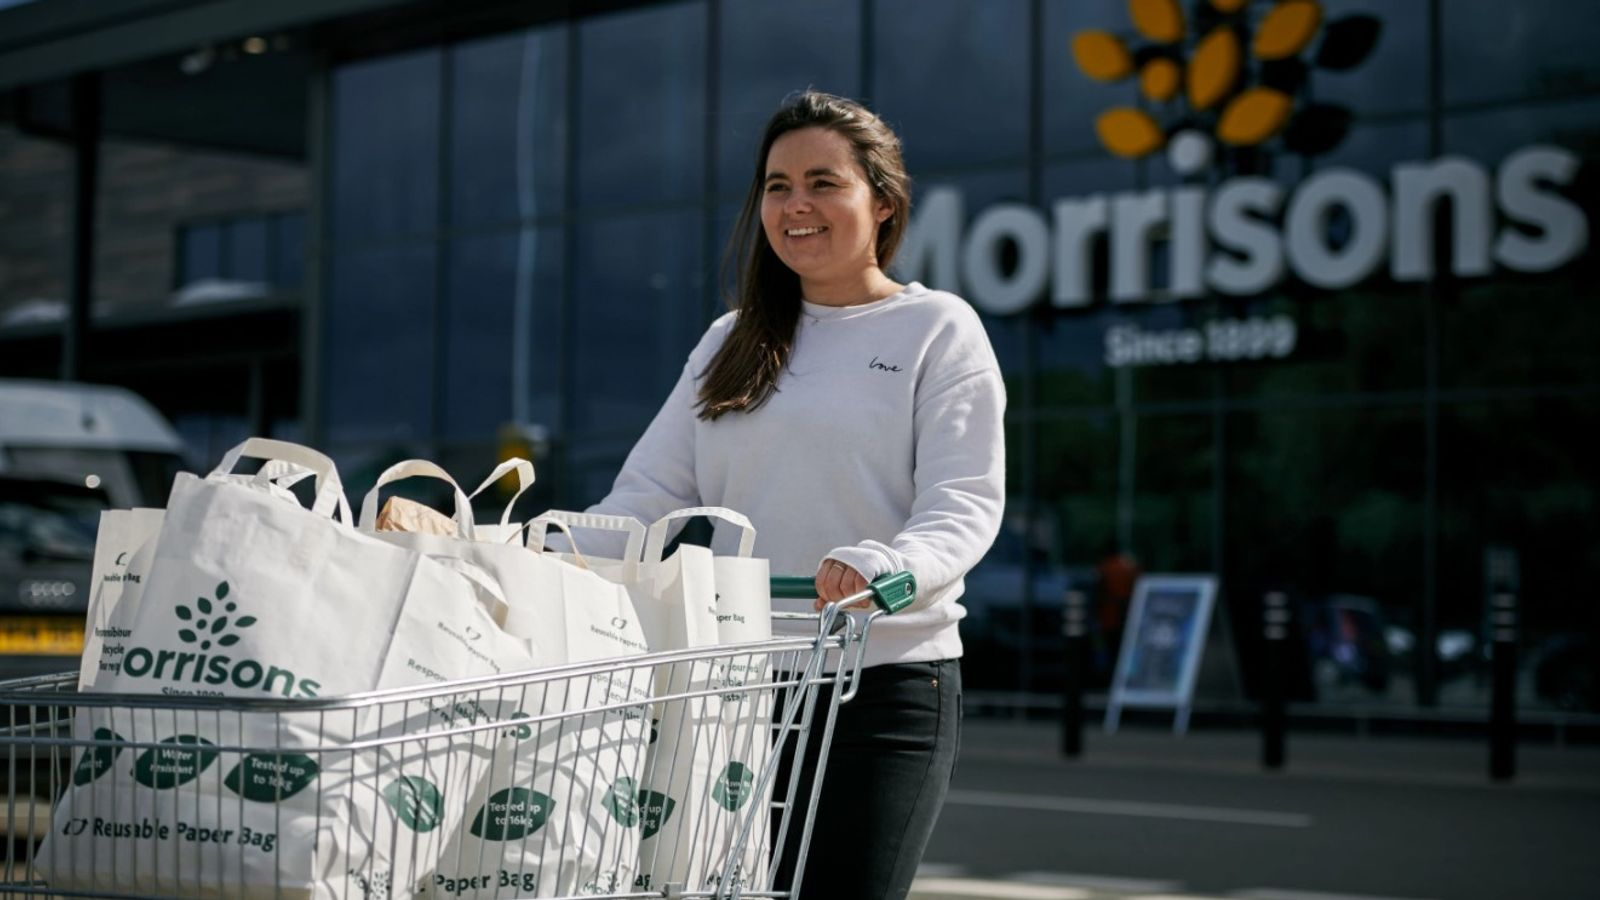 Morrisons suitor given more time to 'put-up or shut-up' as bidding war looms